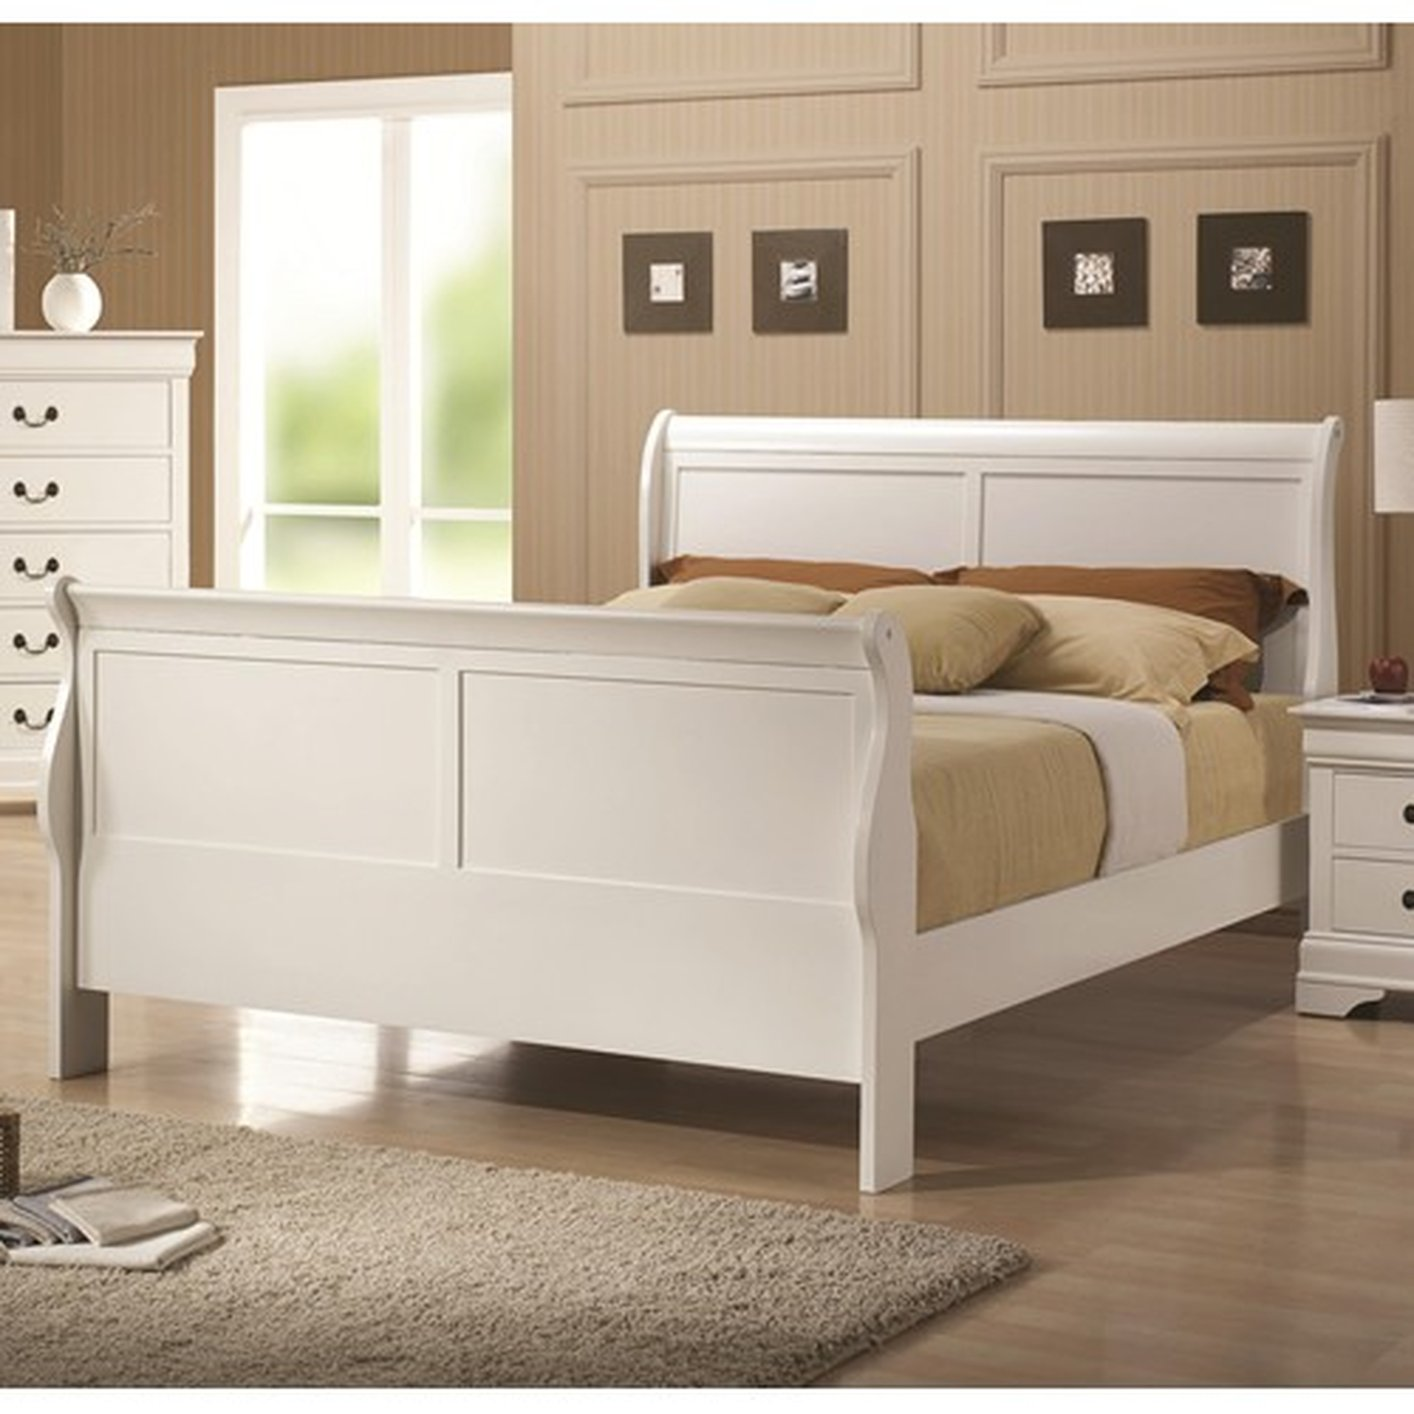 white wood full size bed - Wood Full Size Bed Frame